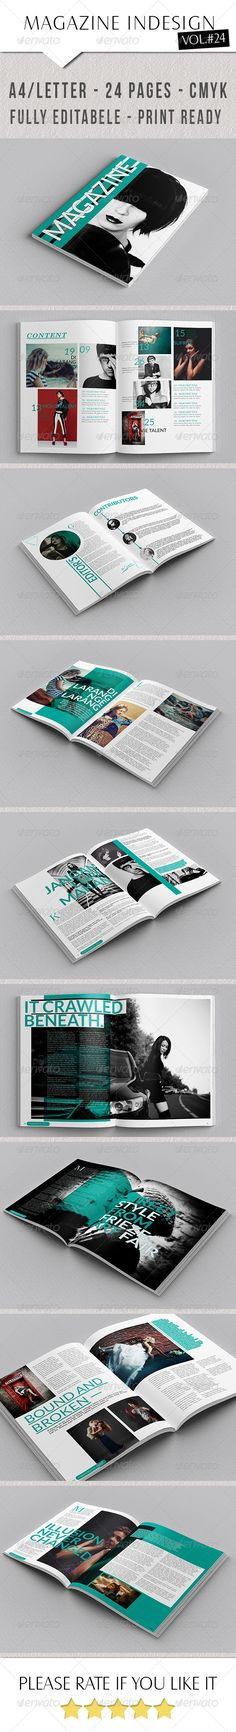 Creative Magazine Template 2 by siomipan  Creative Magazine Template 2This is a professional and clean grunge InDesign magazine template that can be used for any type o